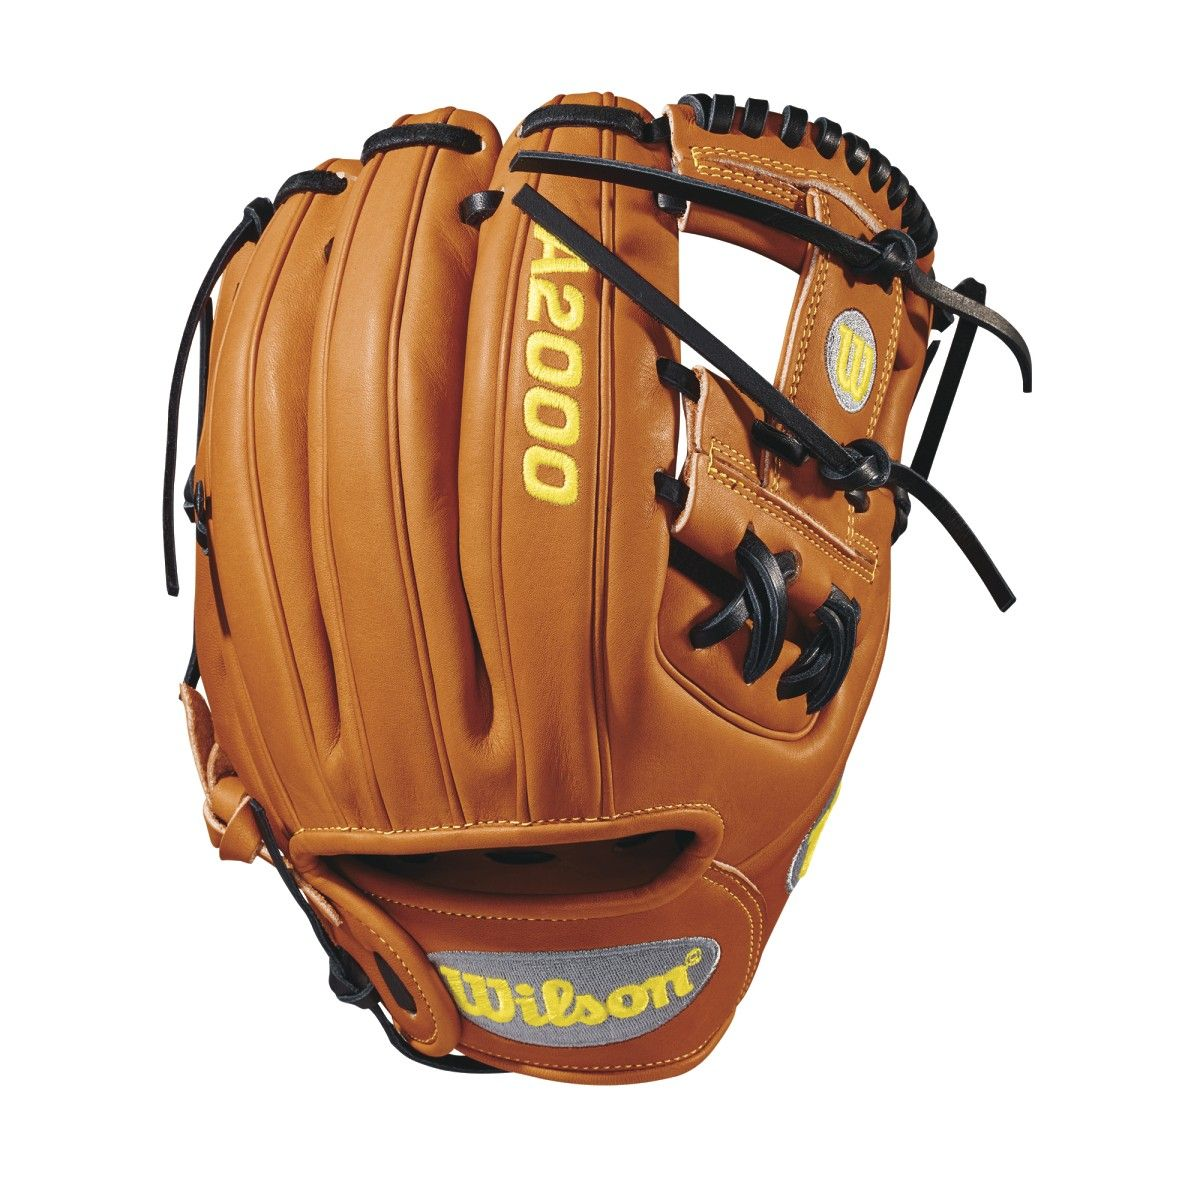 The 2018 A2000 Dp15 Is A New Model In Wilson 39 S Pedroia Fit Line Up Which Are Built With The Patented Pedroia Baseball Glove Golf Equipment Espn Baseball